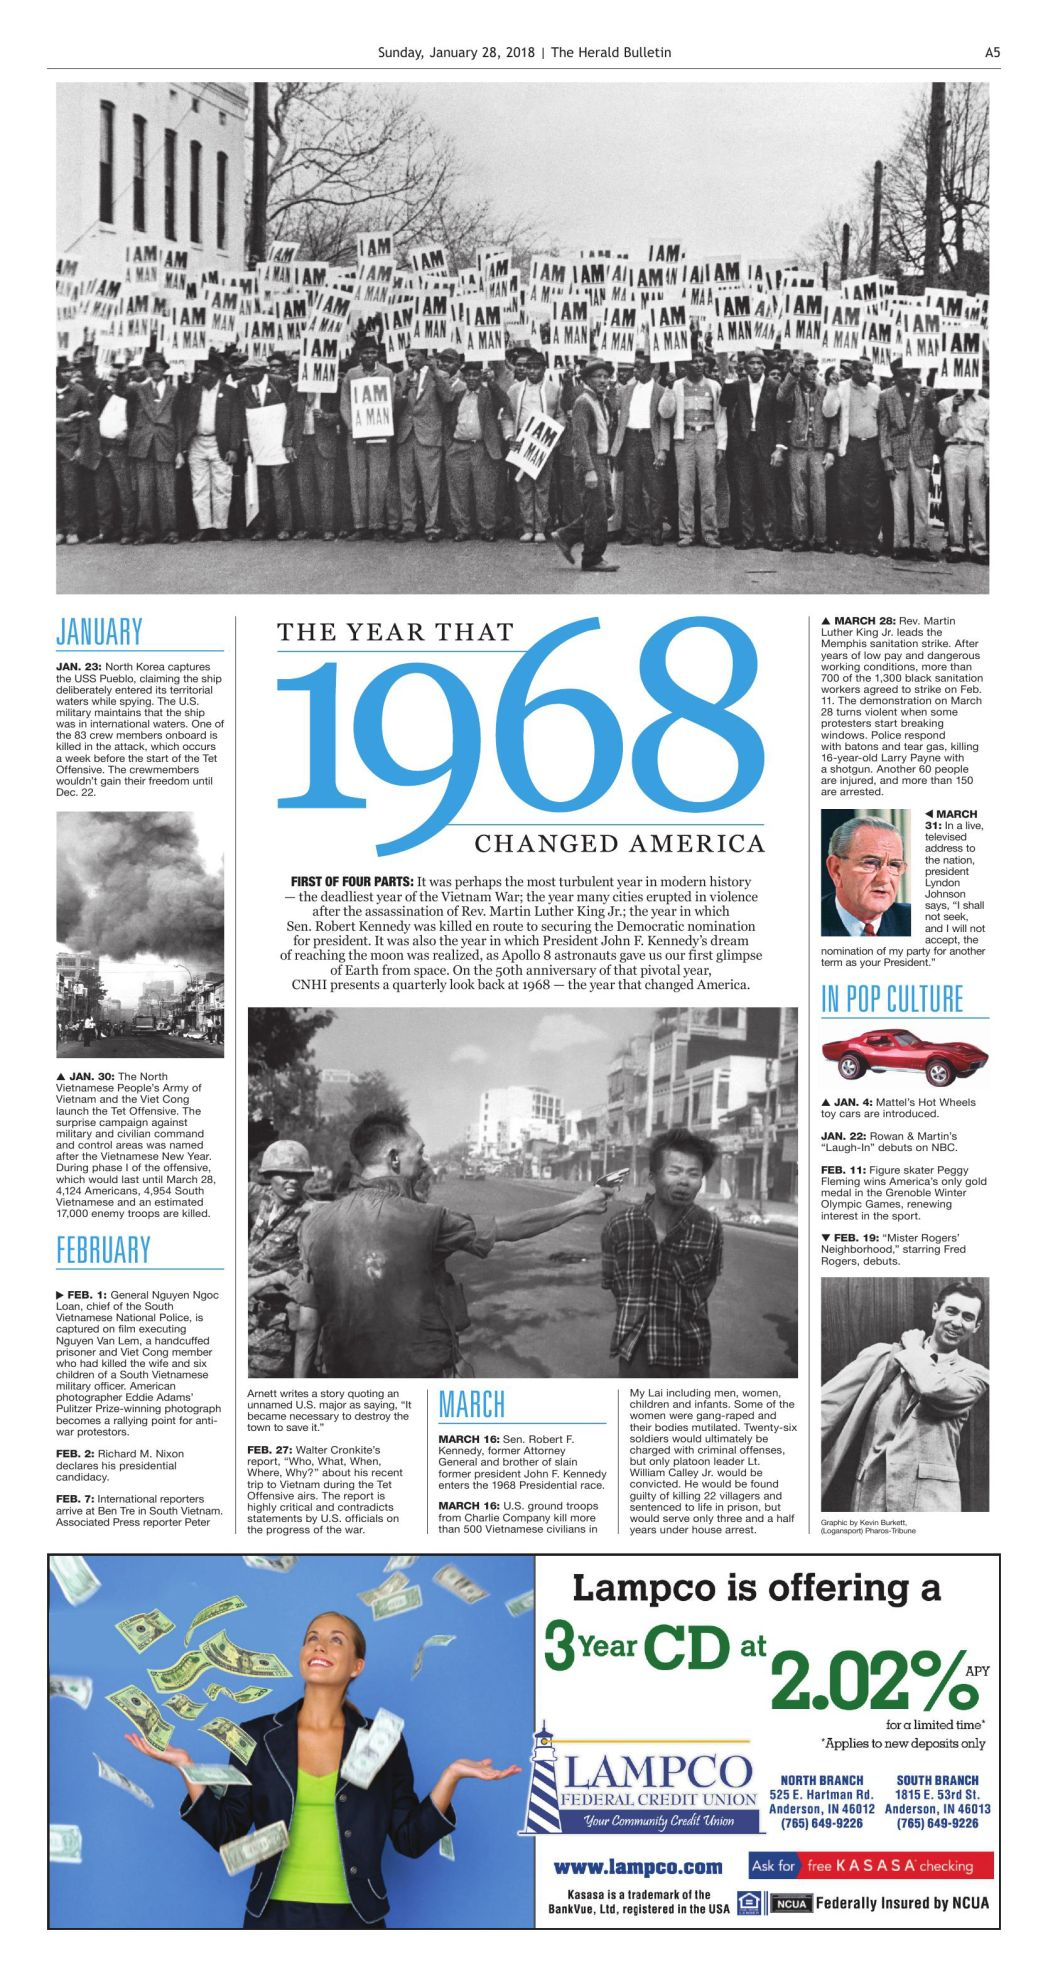 1968: Vietnam War dominated news, but not life in Madison